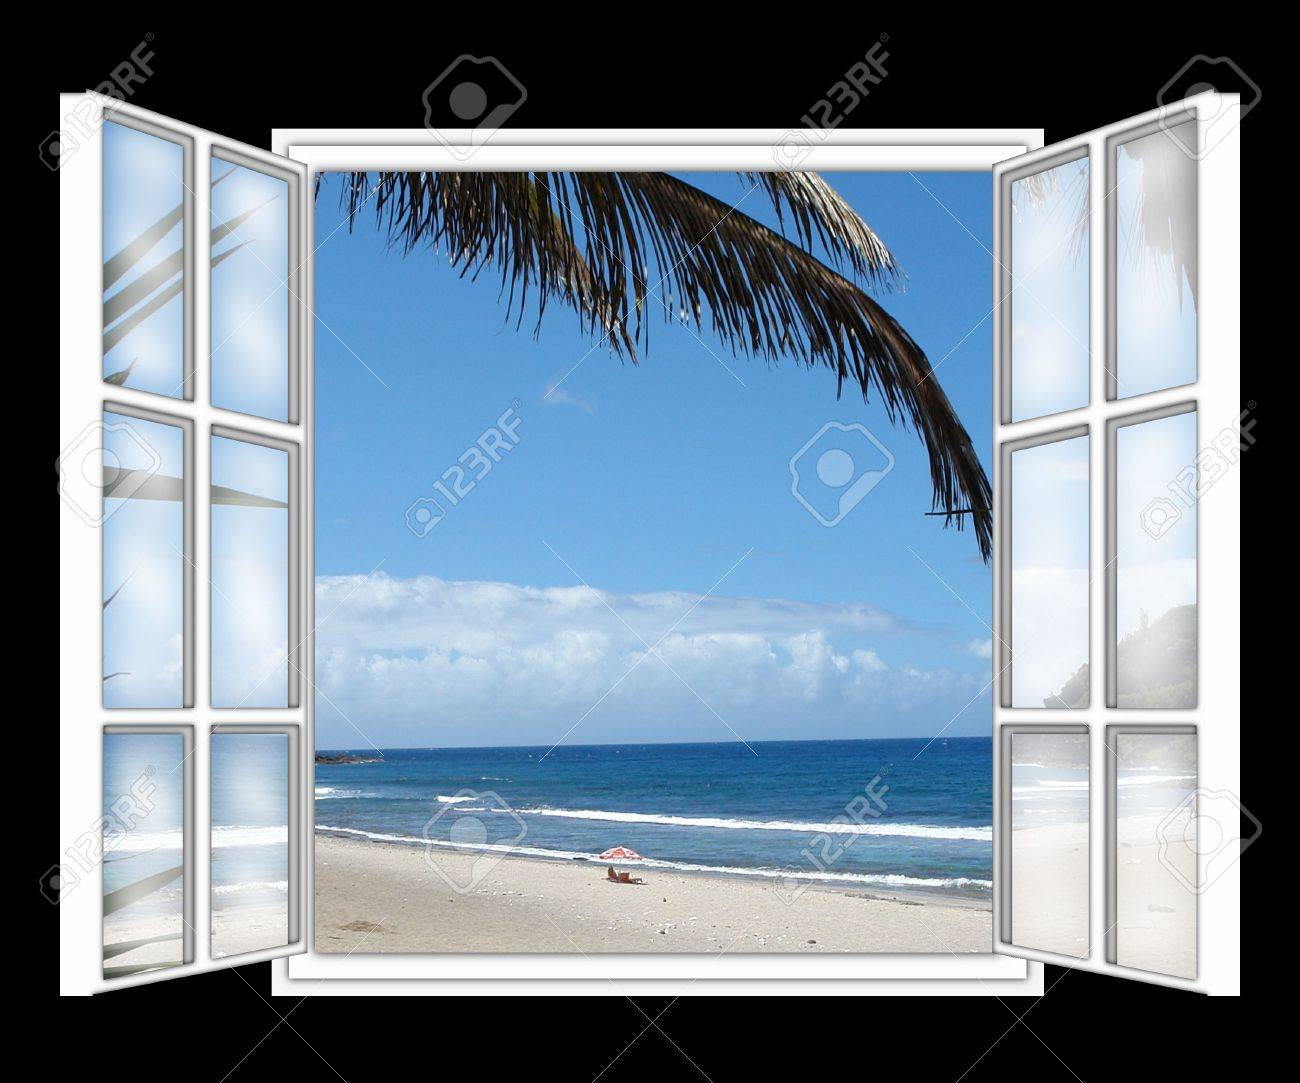 Open window beach - Seen On The Sea Beach Of Dream Through The Window Symbolizes The Holidays In